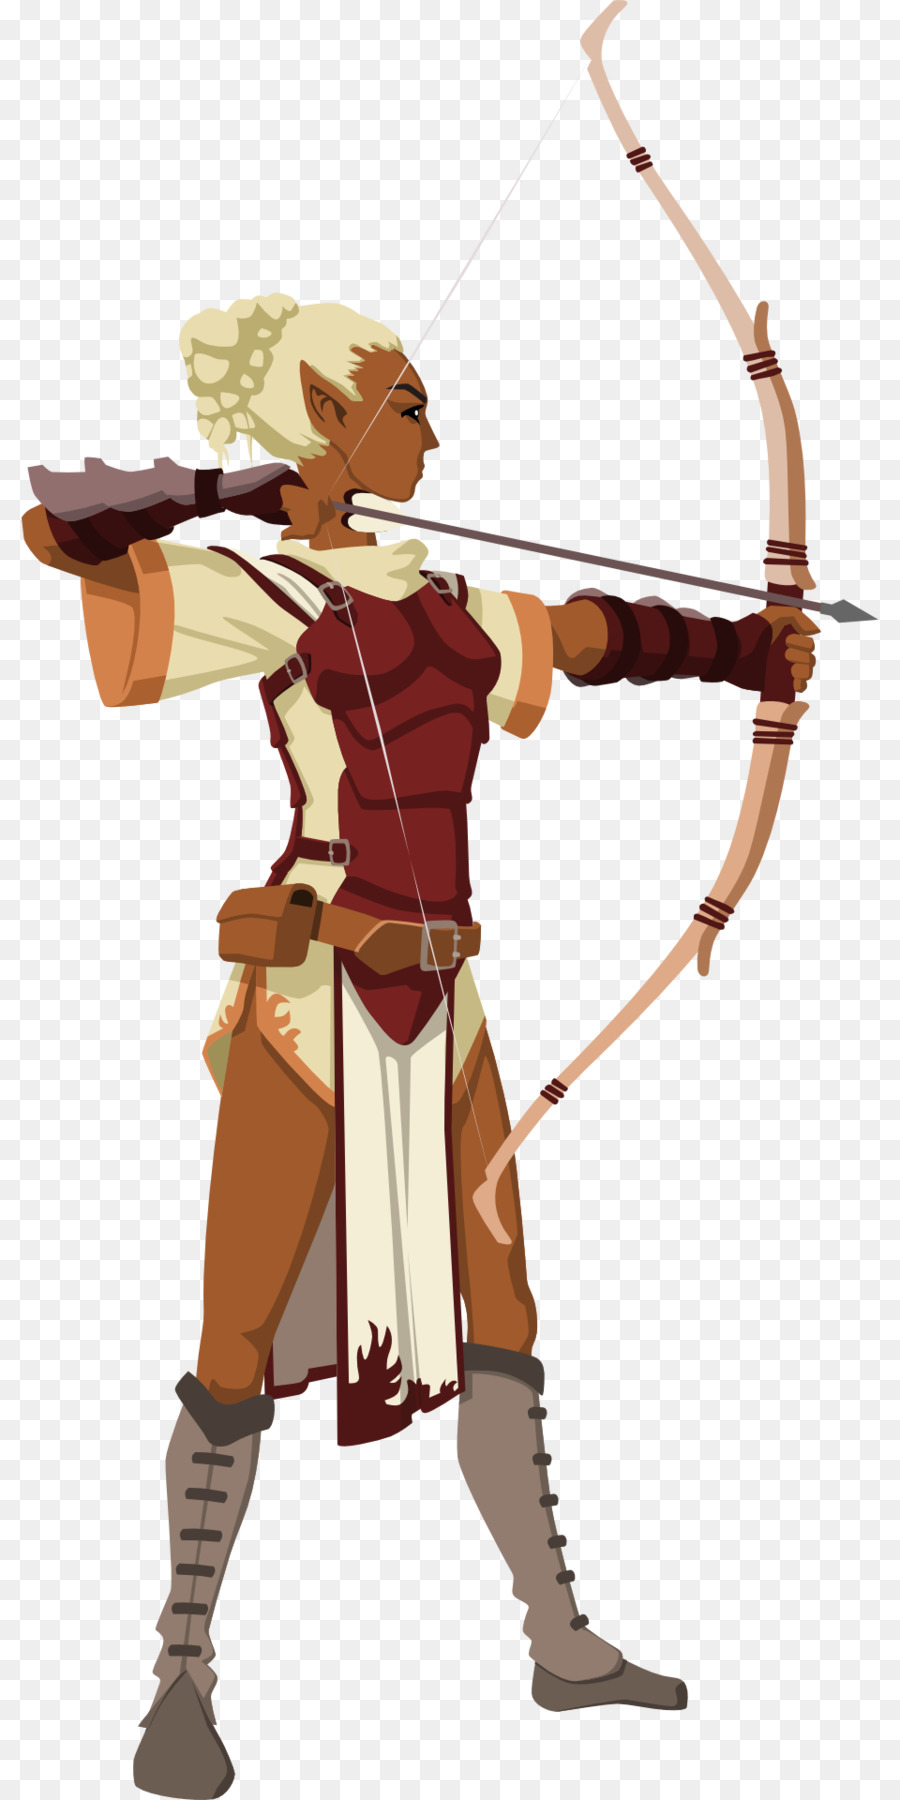 Transparent warrior bow and arrow clipart image library download Bow And Arrow png download - 960*1920 - Free Transparent ... image library download